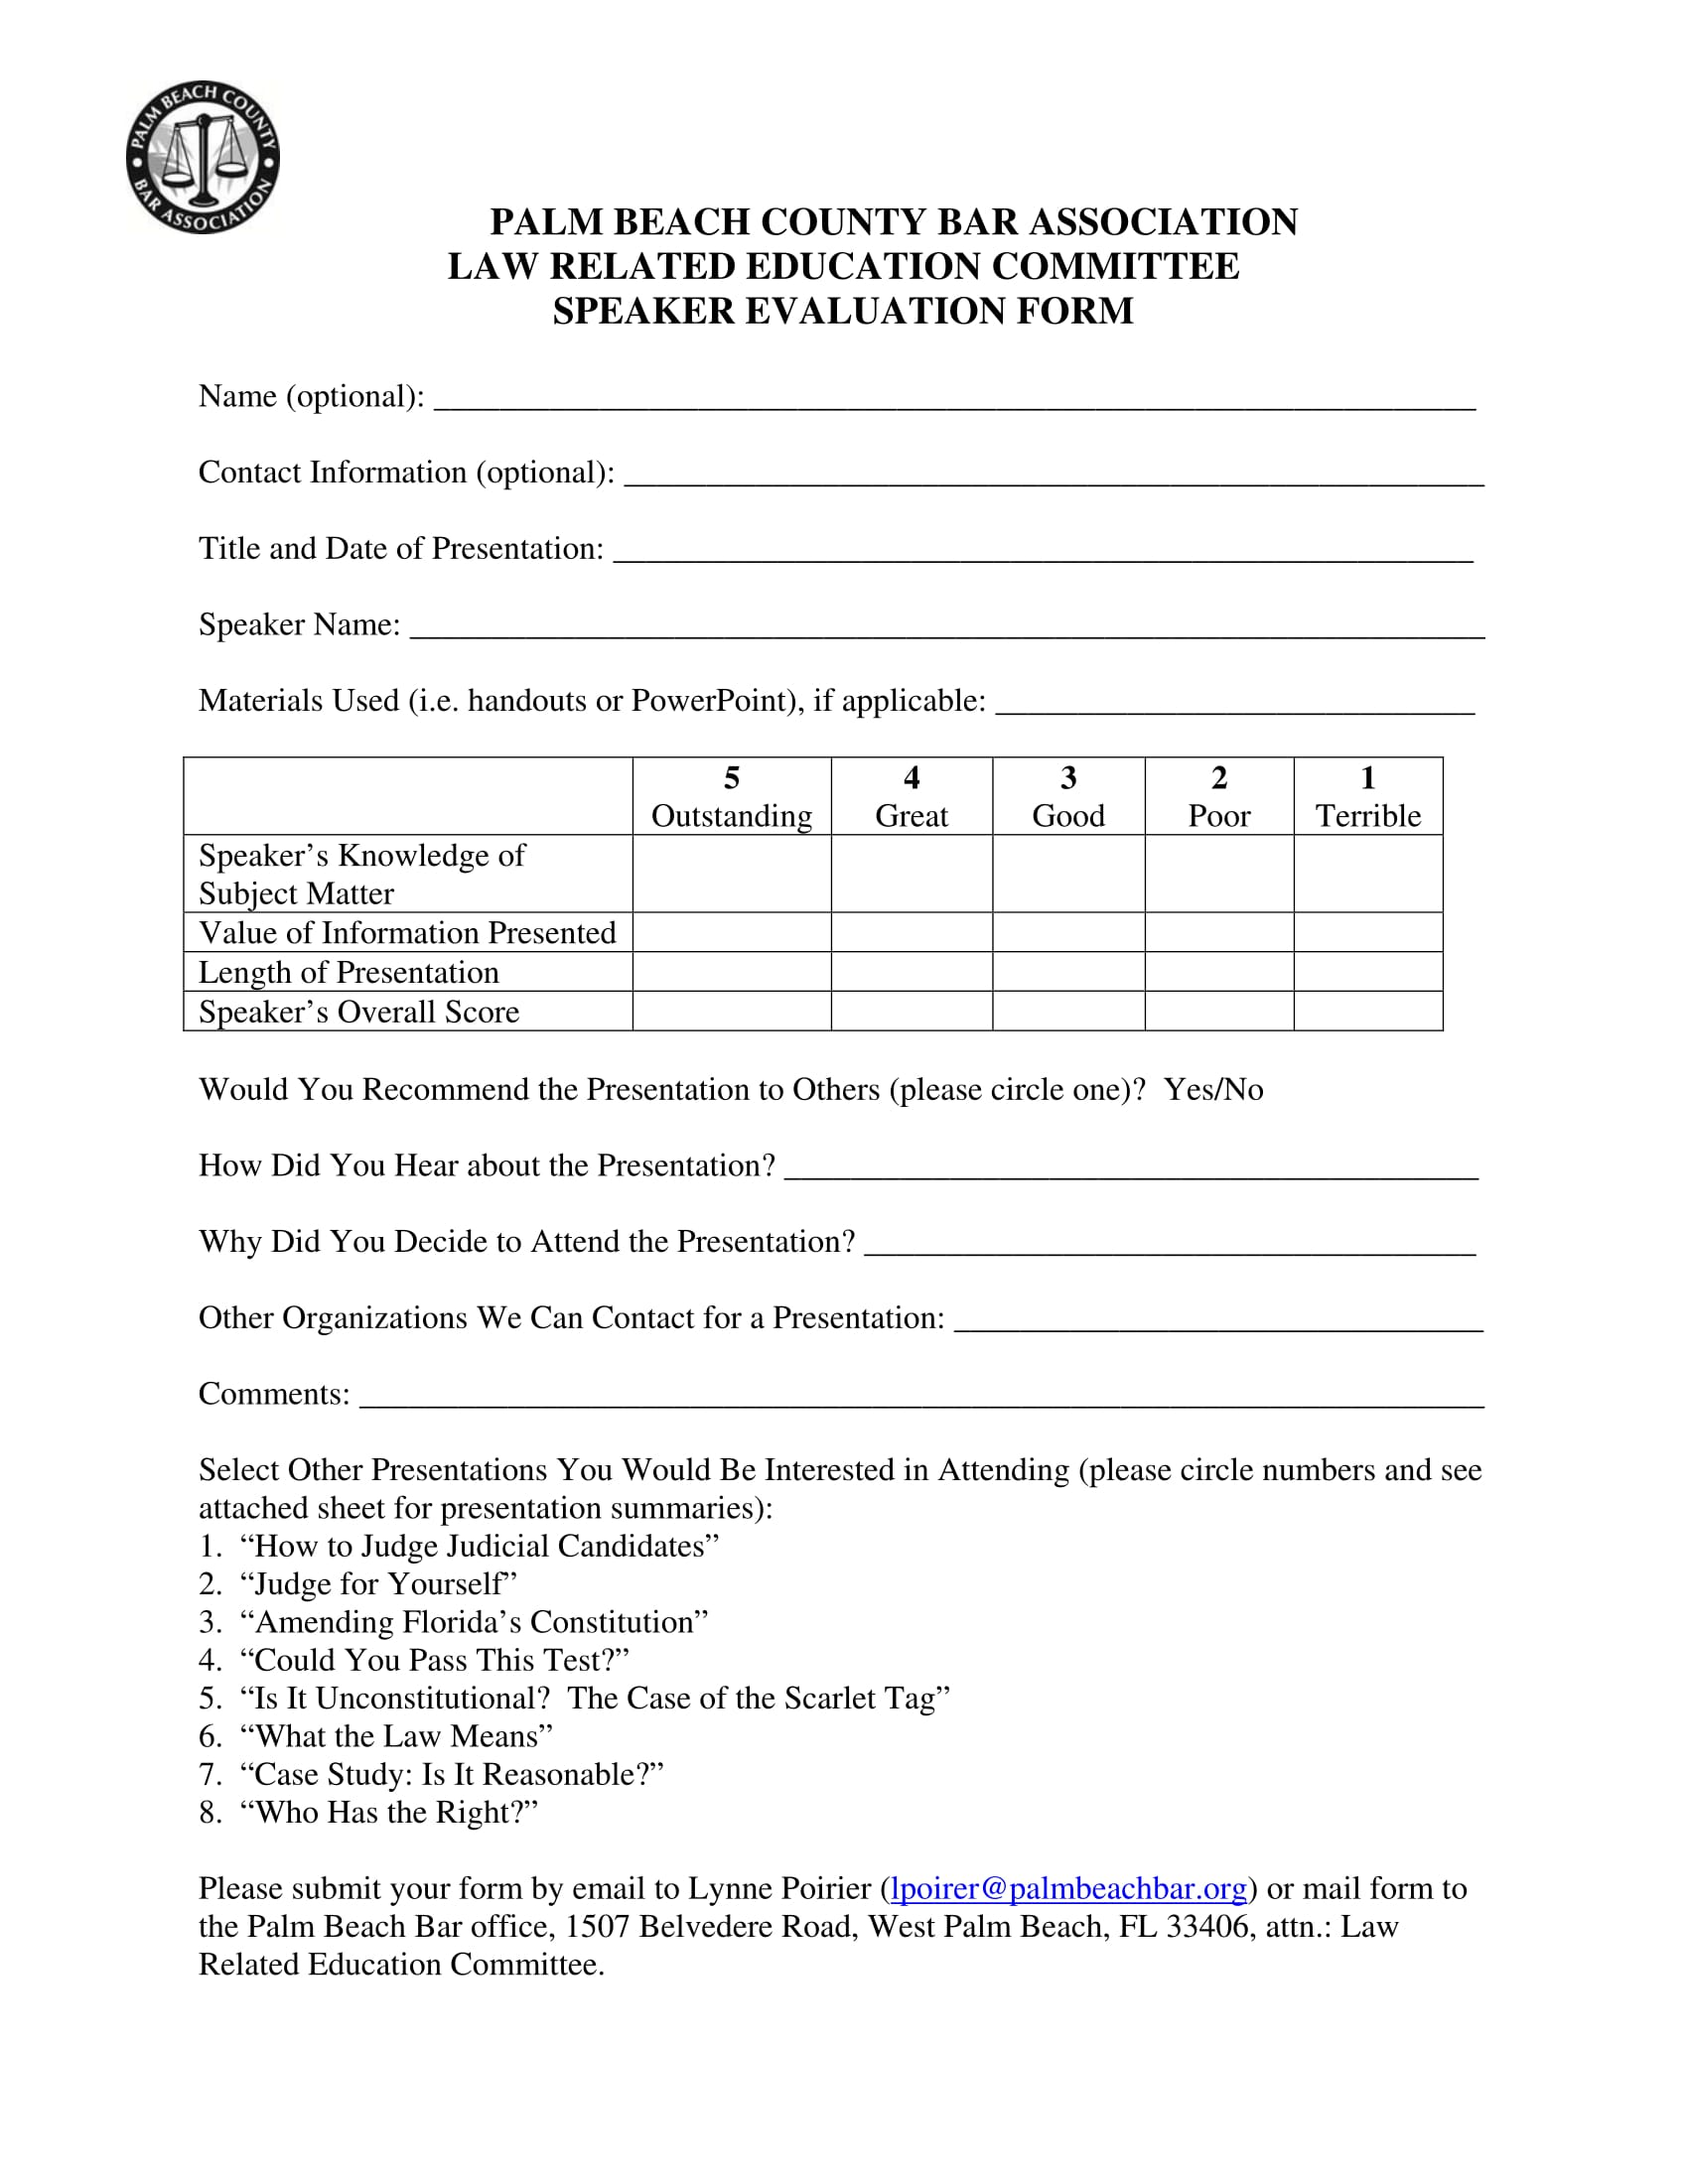 law committee speaker evaluation form 1